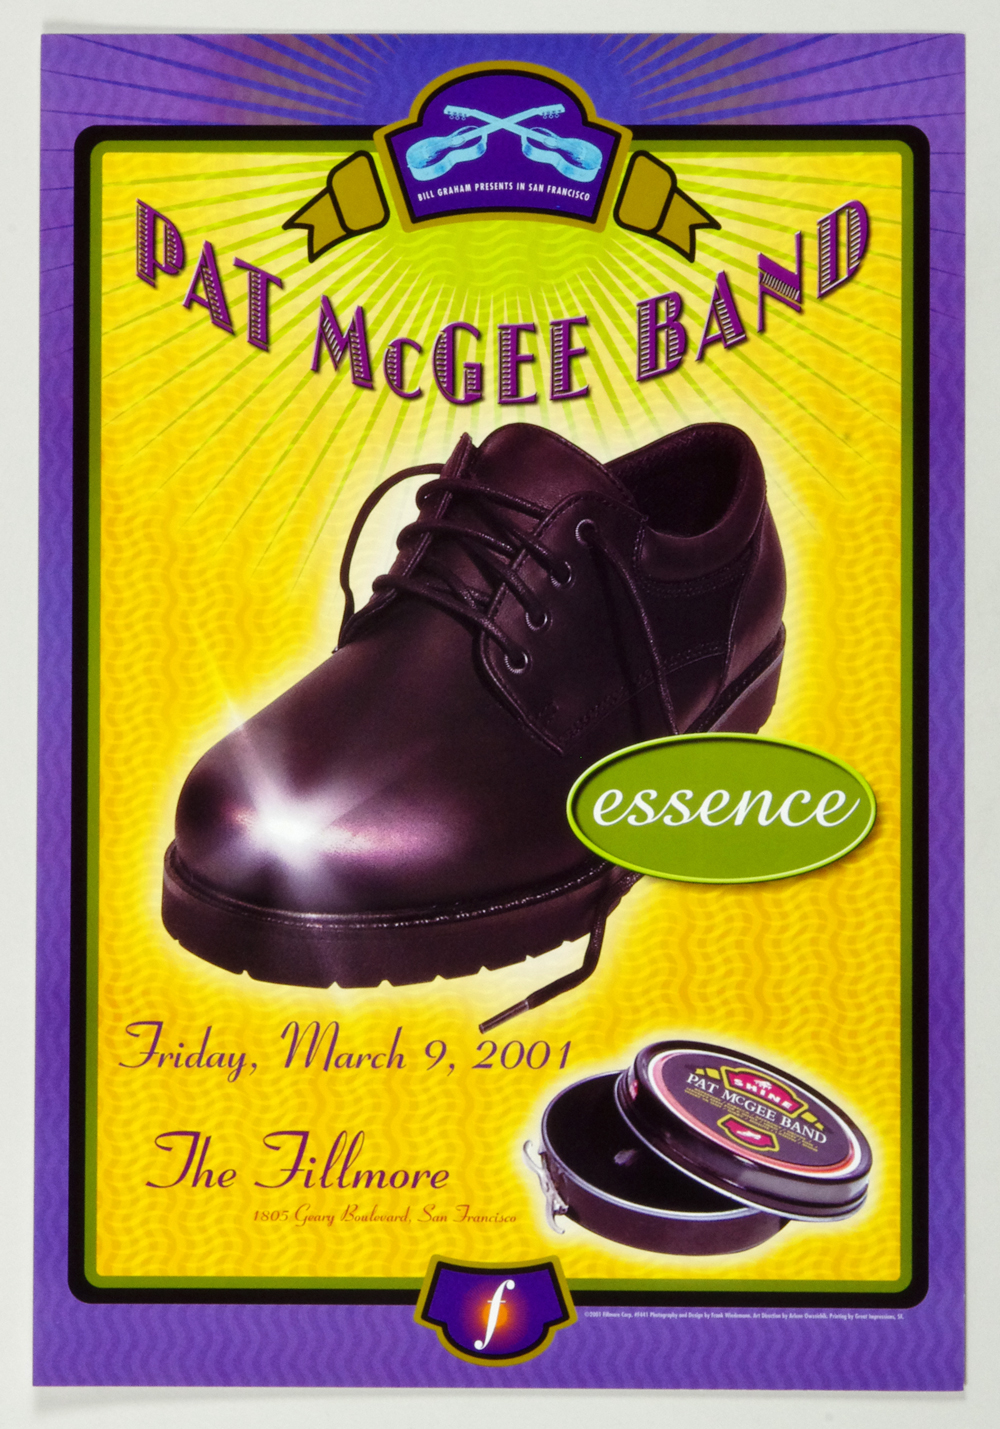 New Fillmore F441 Poster Pat McGee Band 2001 Mar 9